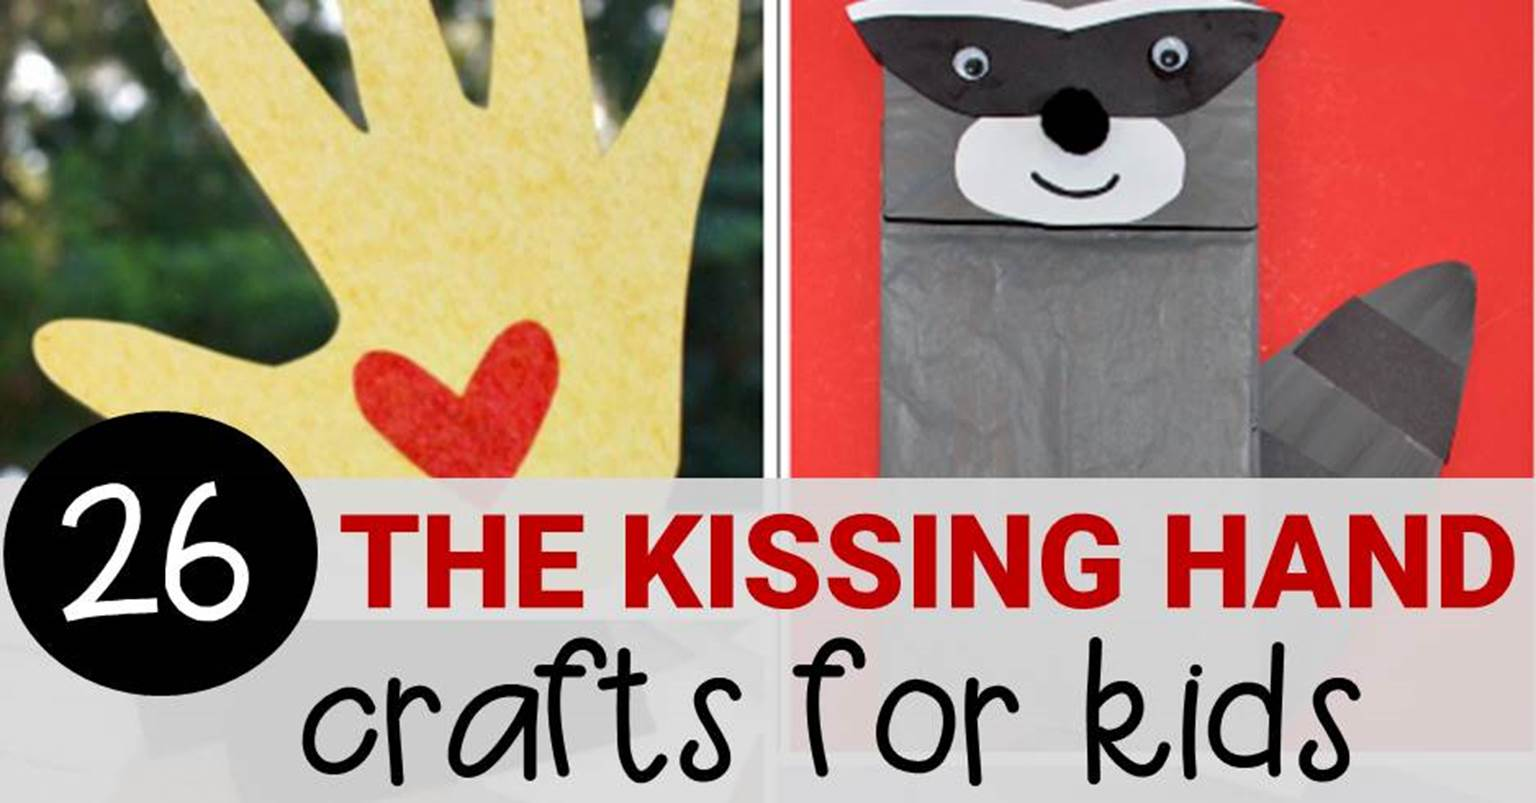 photo about Kissing Hand Printable referred to as The Kissing Hand Crafts That Are Great for Again towards College or university